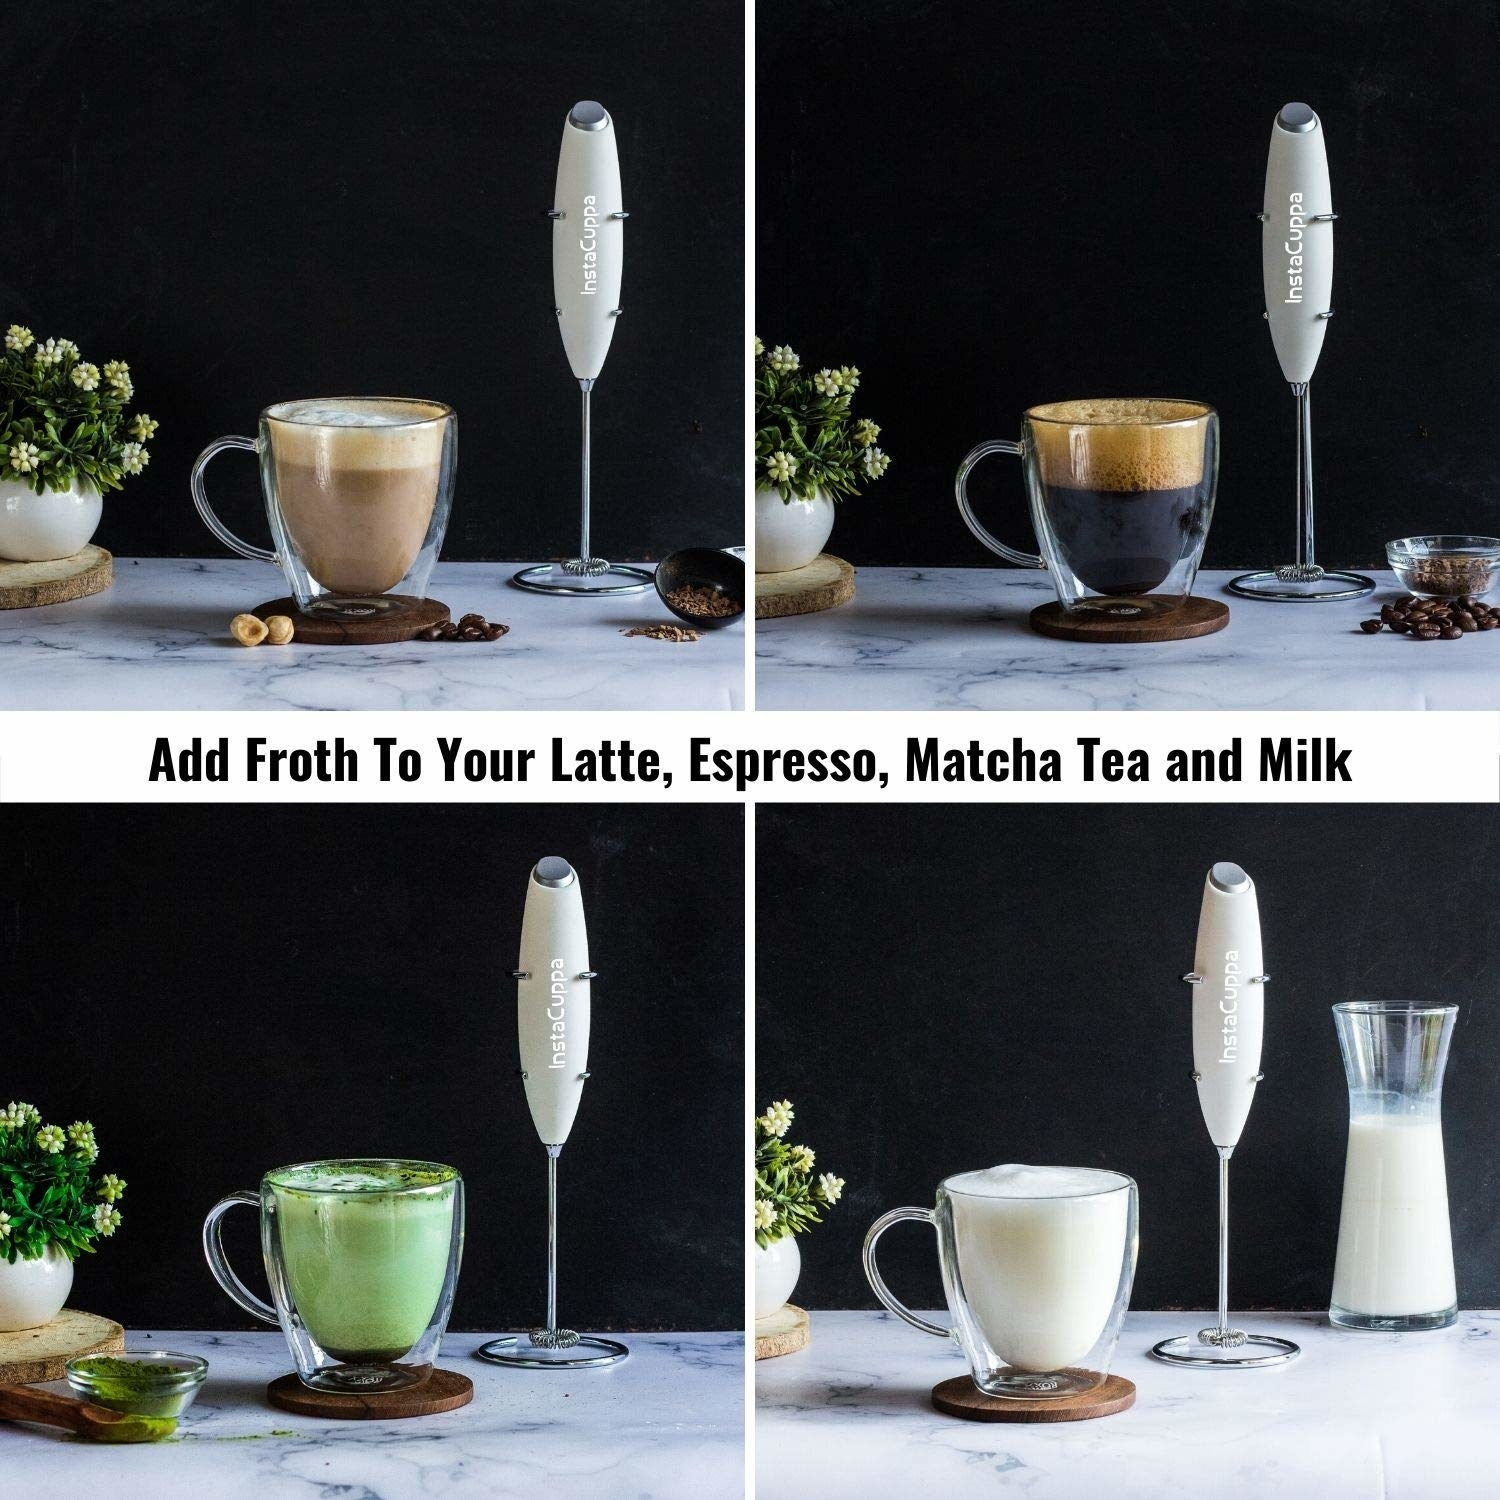 The frother used to make coffees, matcha, and foamy milk